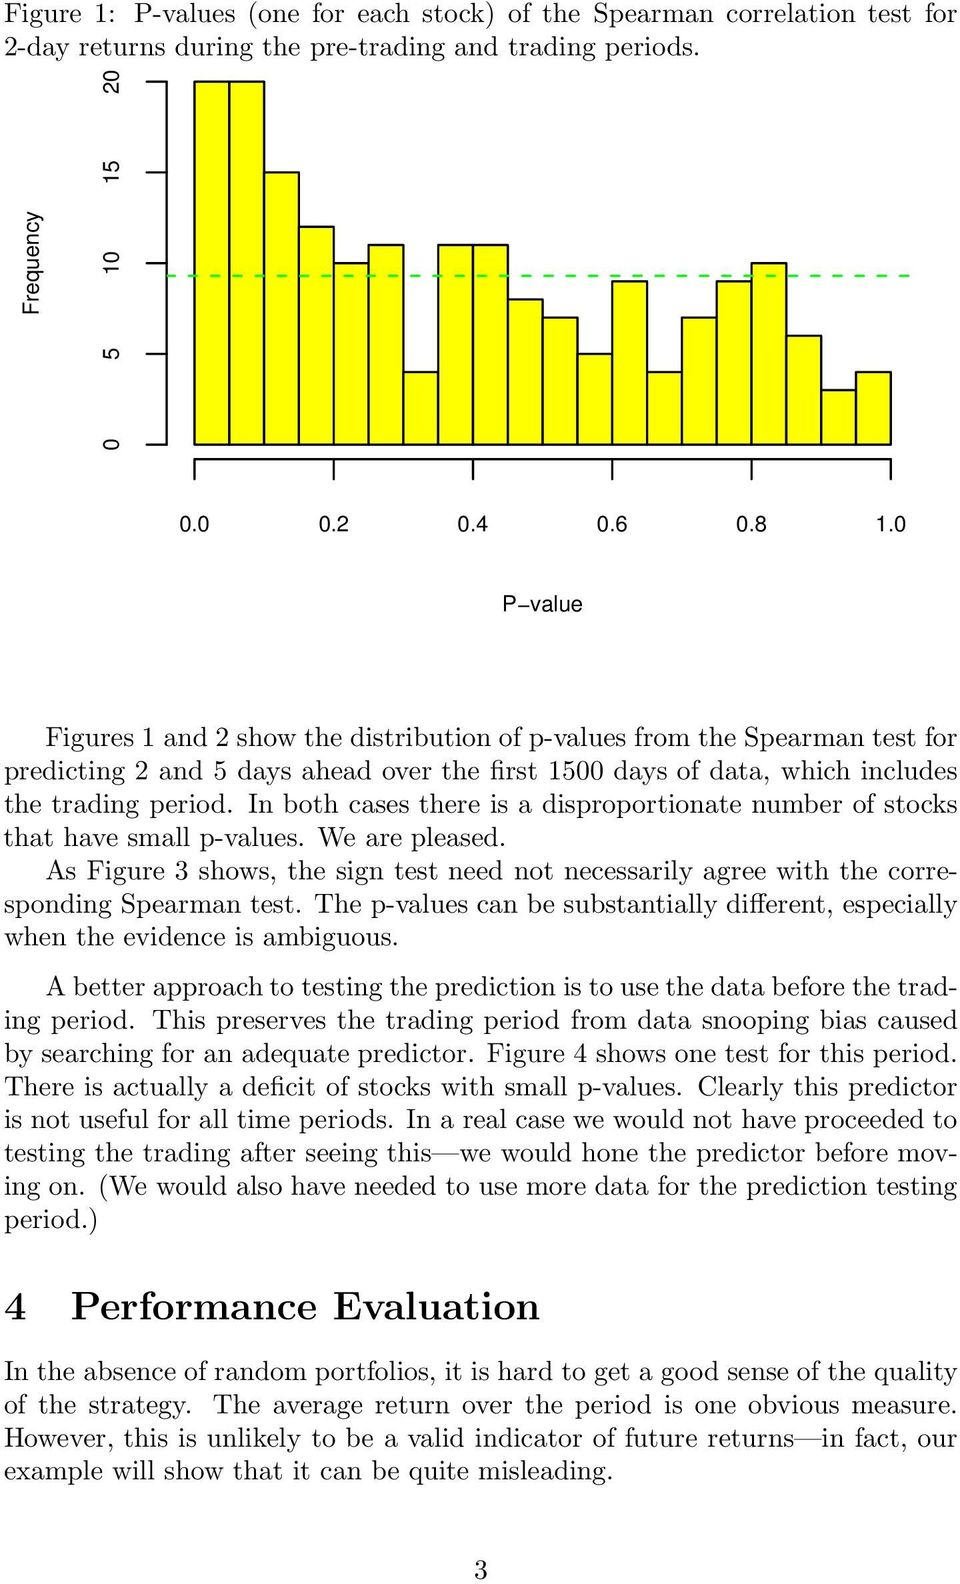 In both cases there is a disproportionate number of stocks that have small p-values. We are pleased. As Figure 3 shows, the sign test need not necessarily agree with the corresponding Spearman test.